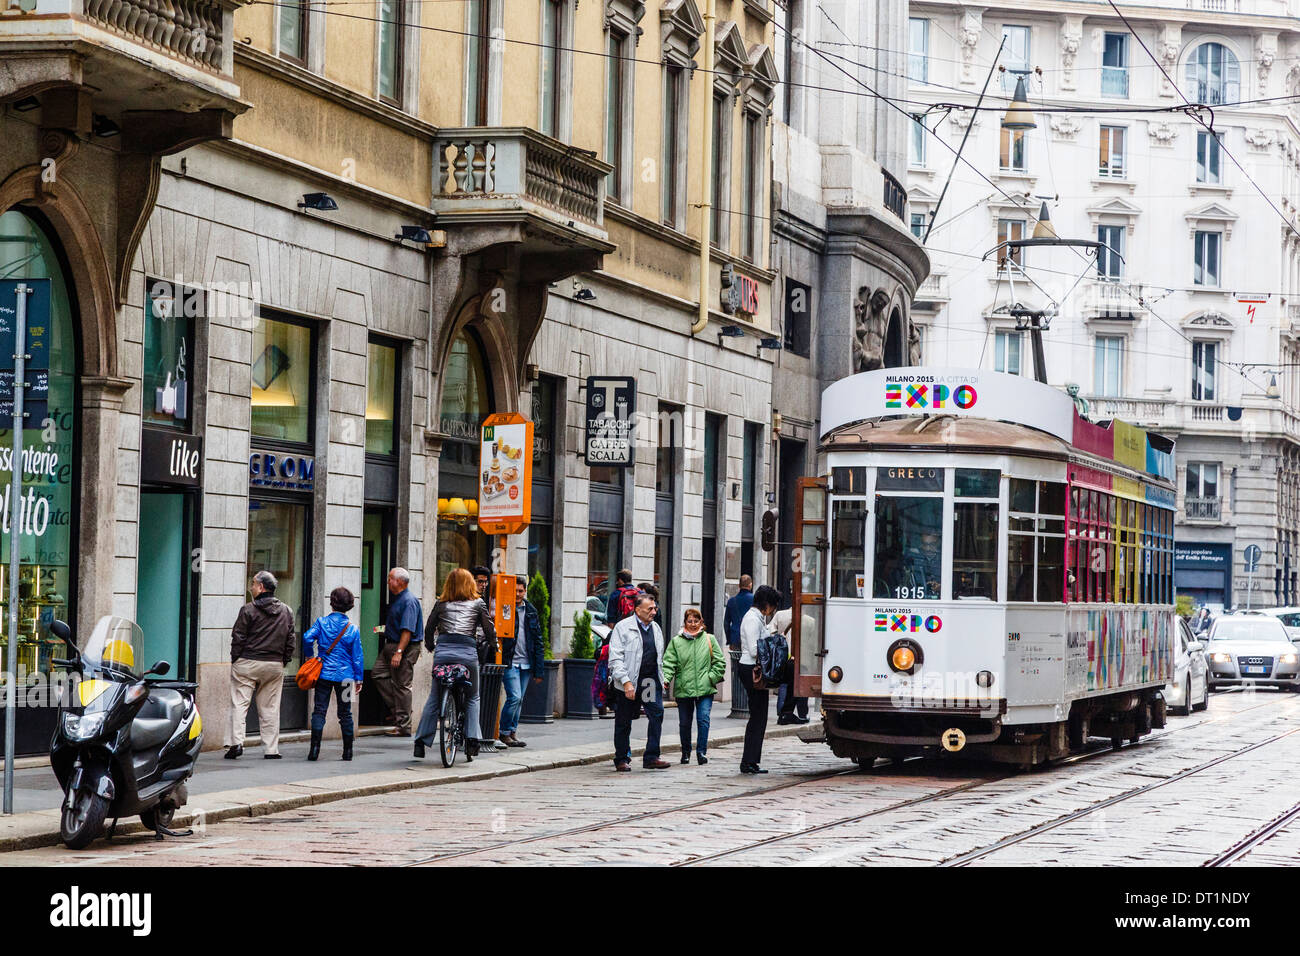 Tram at the city centre, Milan, Lombardy, Italy, Europe Stock Photo